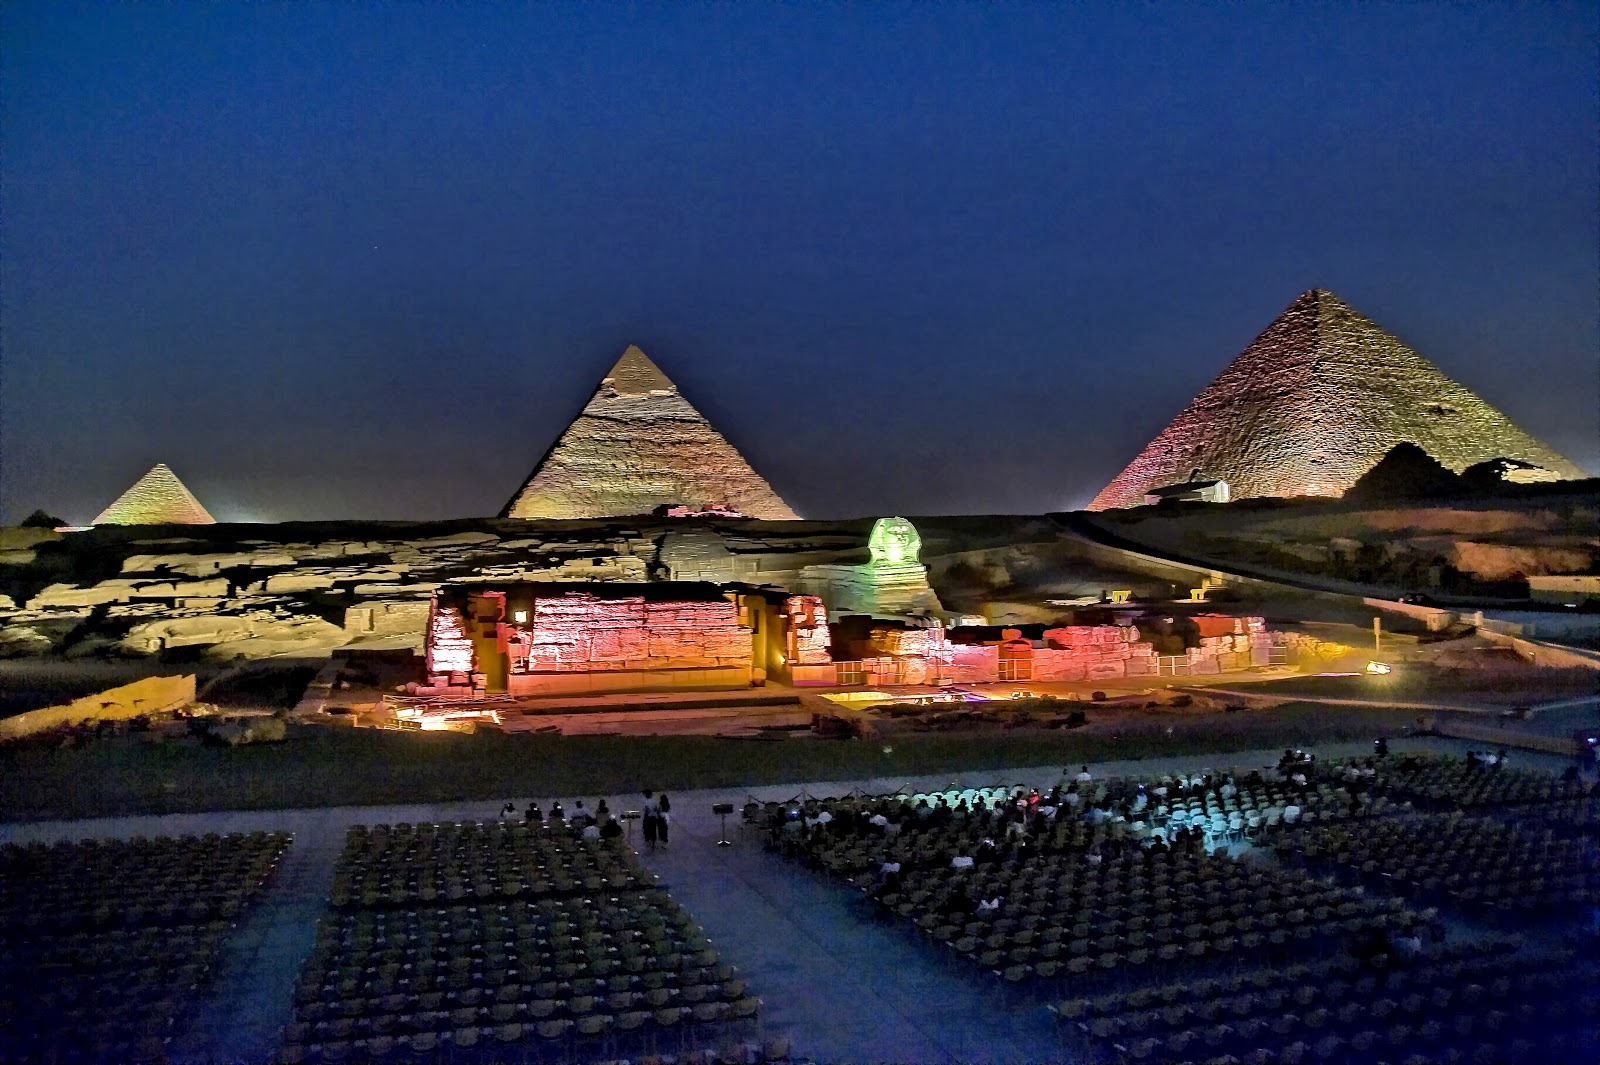 light and sound show pyramids of giza